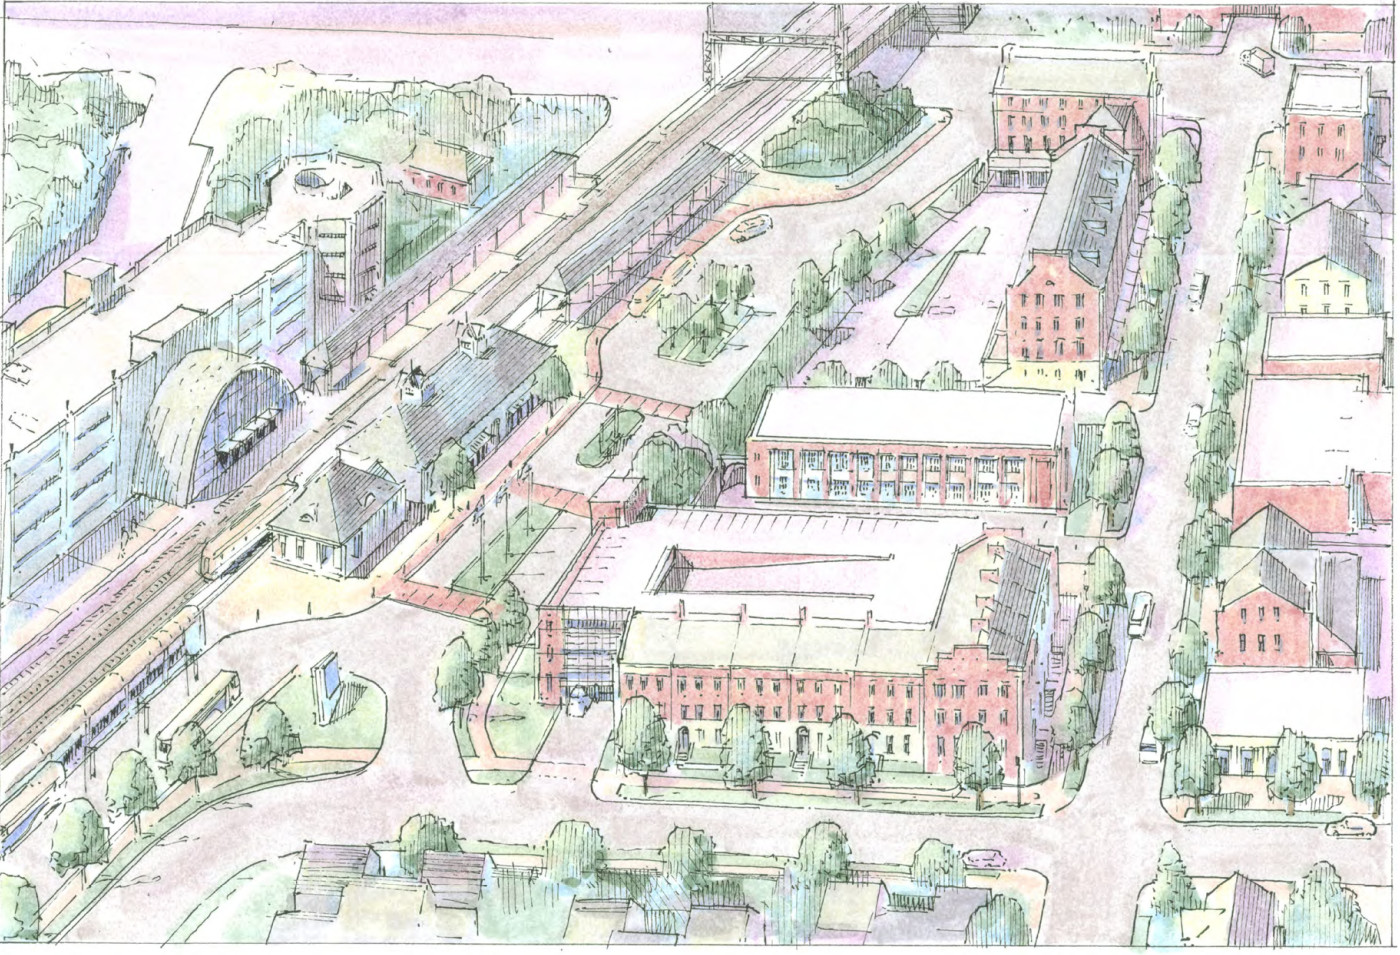 South Norwalk Transit Oriented Development Master Plan